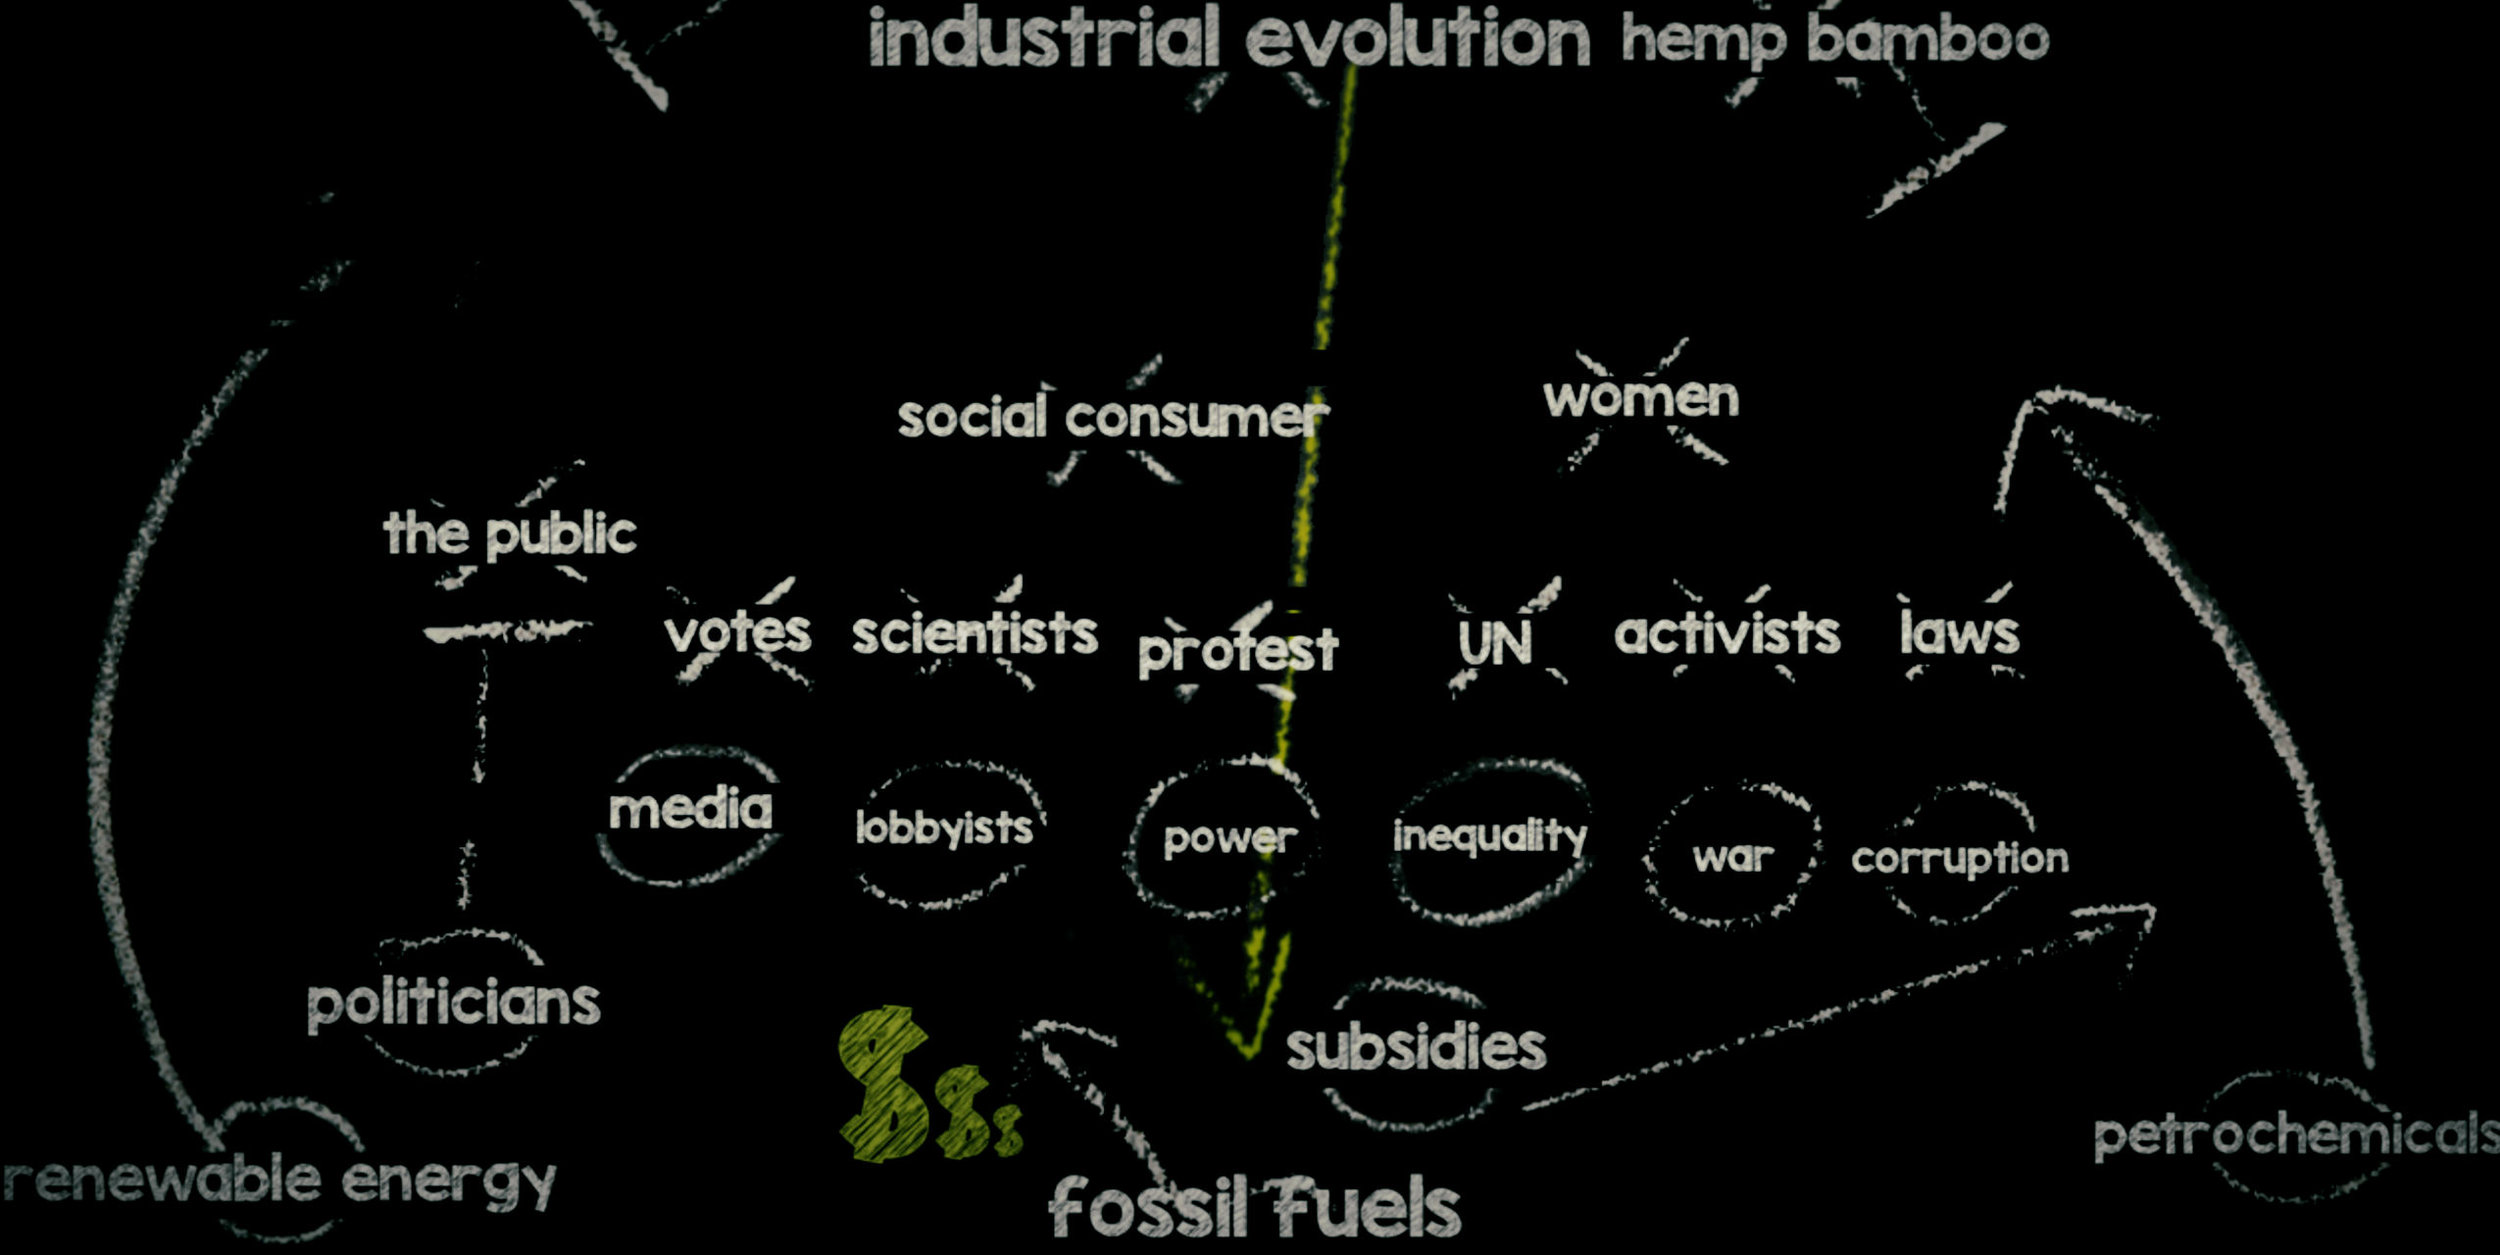 THE STRATEGY - Our mission is to sell hemp & bamboo products committing profits to building farms & factories.HOW?Women are the most powerful consumer force in the world. Women make 80% of all consumer purchases. Worldwide, women are a 22 Trillion dollar a year powerhouse. If women want equality, it will be only by a shift in power. The ceiling for women is not made of glass. The ceiling is made of oil and coal, built from profits selling the commodities that are funding elections, lobbying, and legislation. It will continue to be a man's world while men control over 90% of the world's oil and coal resources. Oil and coal don't just provide gas and heat. To sum it up oil, coal, and petrochemicals are everywhere in everything we touch, eat and consume. Solar, wind, or even wave technology will not suddenly end the demands for fossil fuels. Source: American Fuel and Petrochemical Manufacturers Fossil fuels has a new, more profitable, business model.Women make 80% of all consumer purchases. Oil and coal are in everything consumer's purchase. So, men sell oil and coal products to women, then use the money to buy politicians that oppress women. Are there options? No. Women haven't bought them yet. That is why women's rights take the spotlight for a moment, and are quiet again.However, if women now decided that oil, coal, and toxic chemicals were unacceptable; women could cause a global disruption. A shift in power. The need for a shift to renewable MATERIALS in consumer products presents an unprecedented opportunity for women to